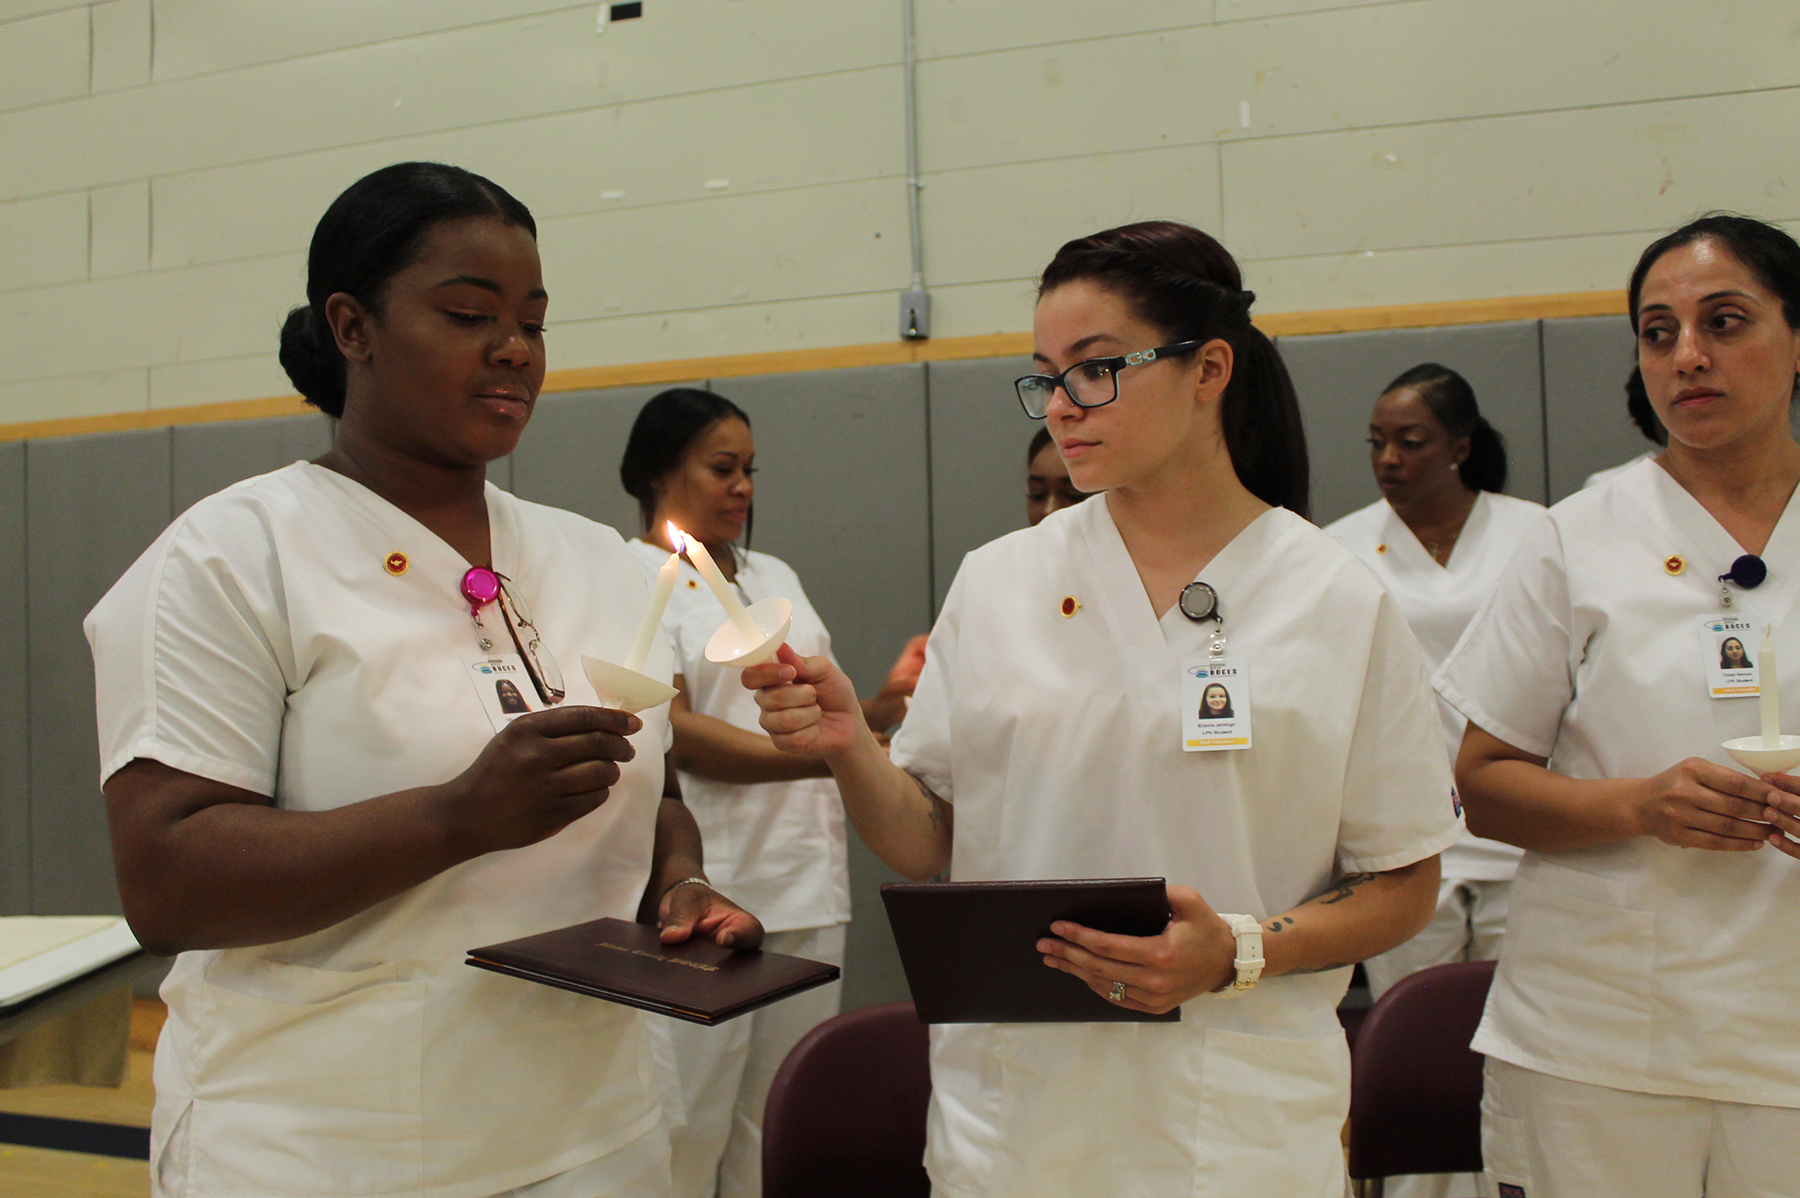 Ulster BOCES School of Practical Nursing Graduates 27